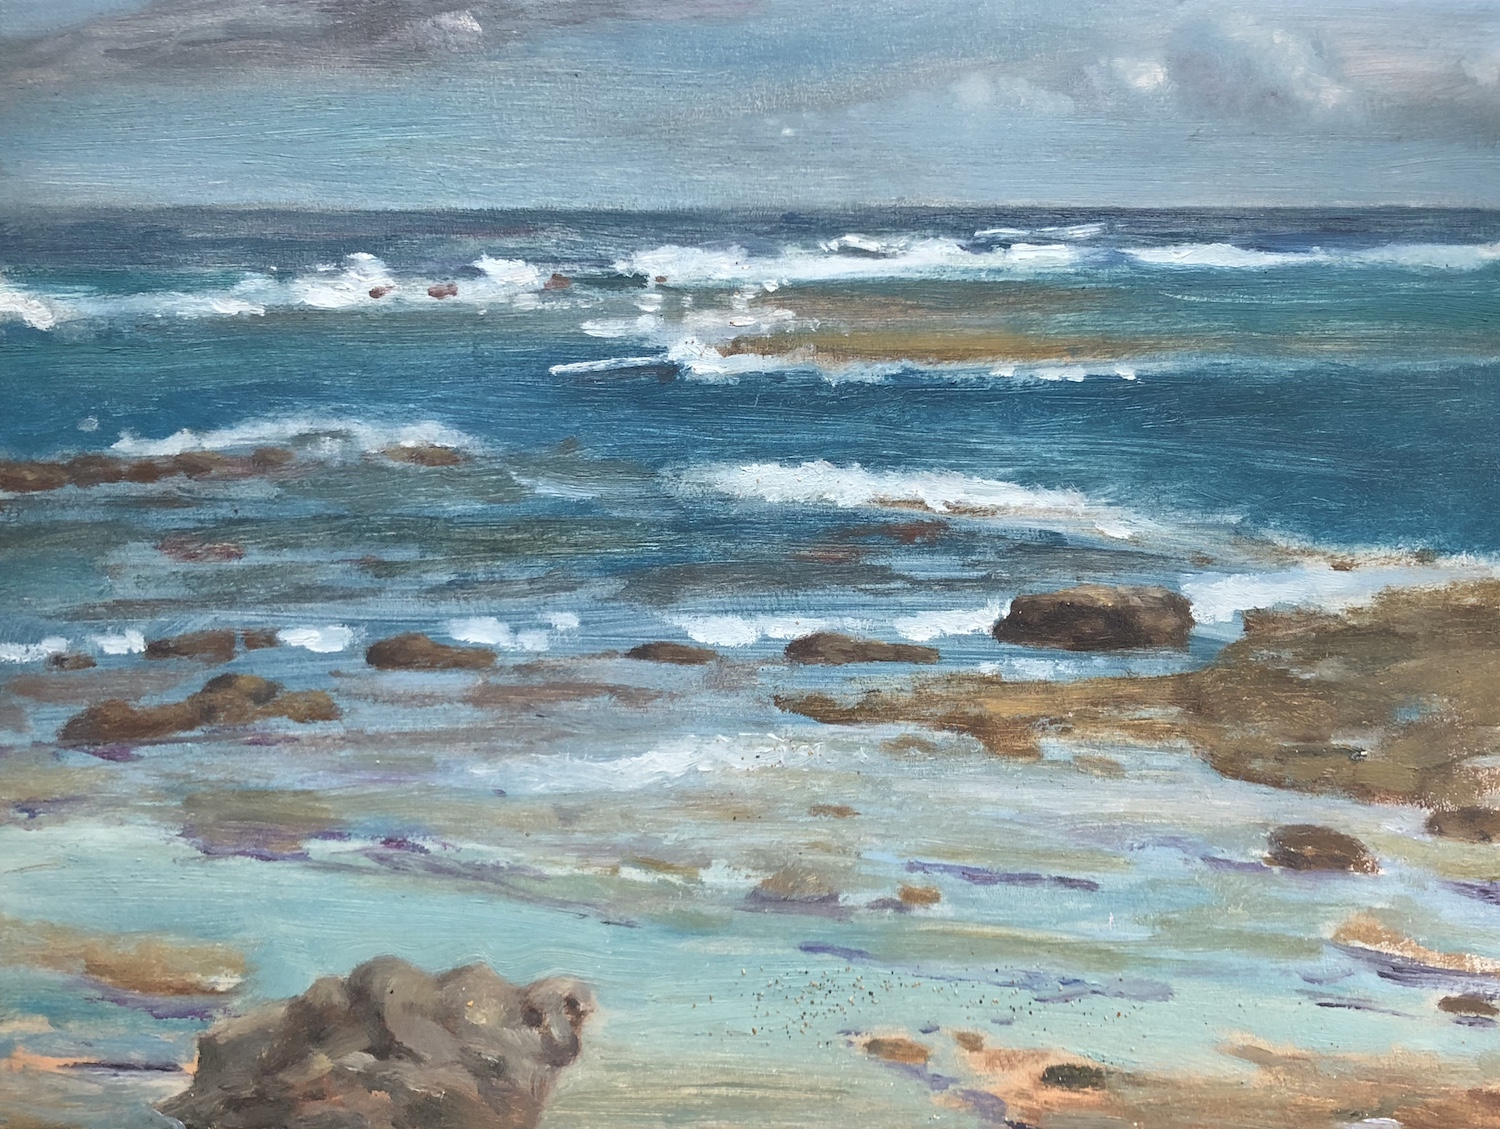 Ha'ena Storm Oil on linen 9 x 12 inches 2009